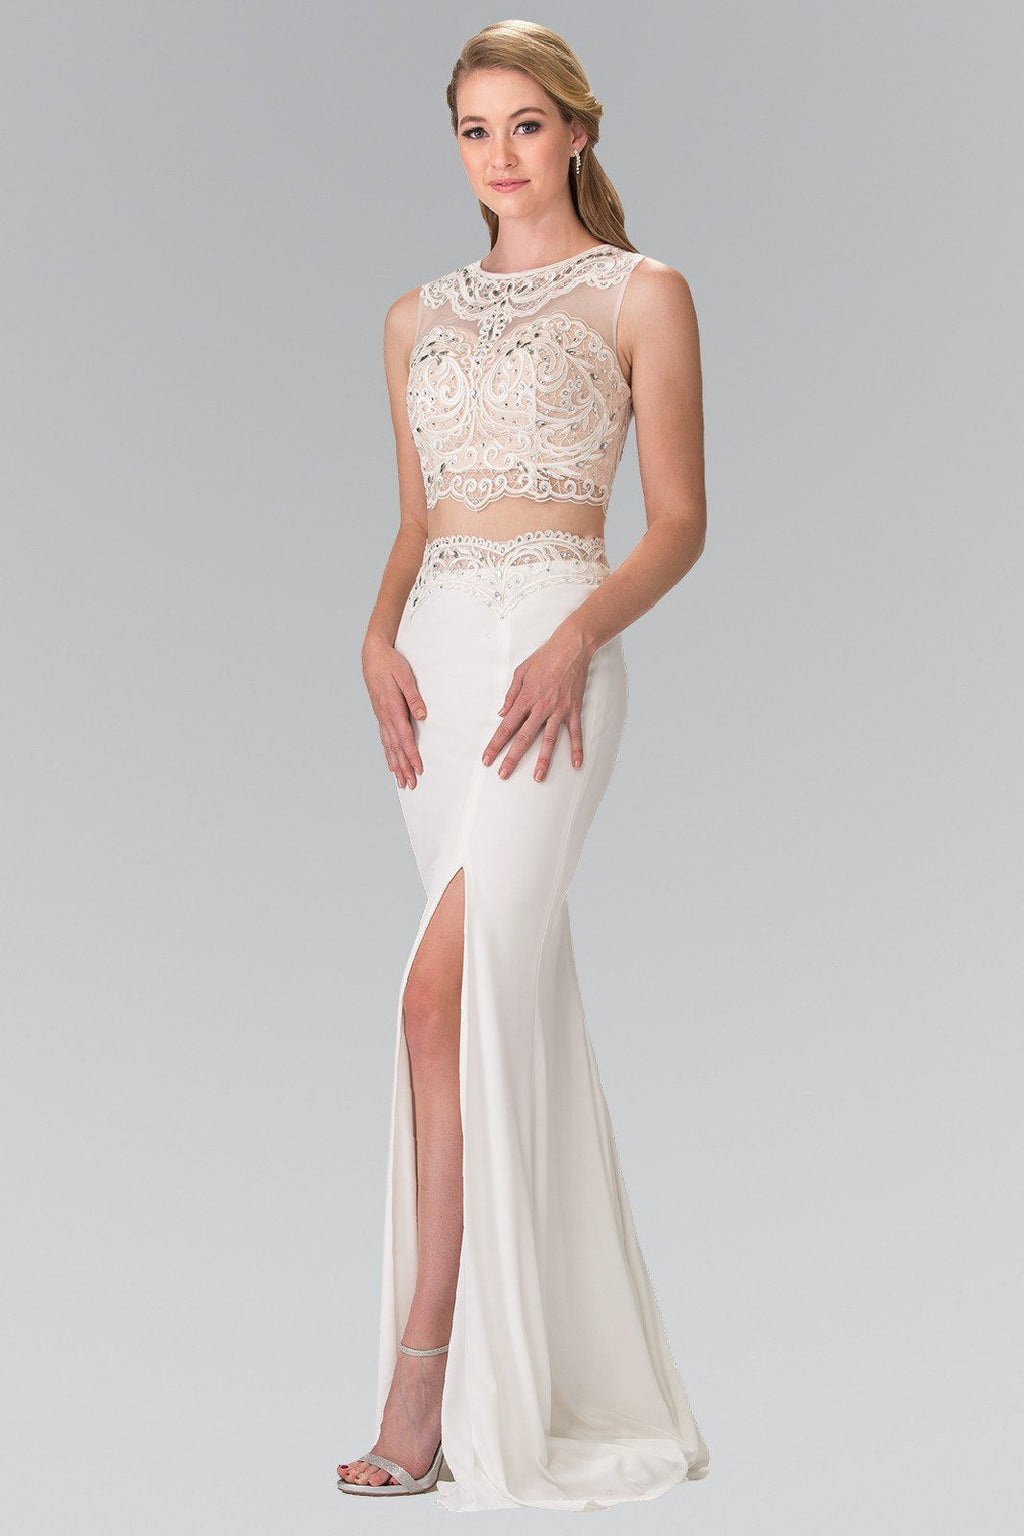 Sexy 2 piece cheap prom dress with high slit #Gl2373 - Simply Fab Dress